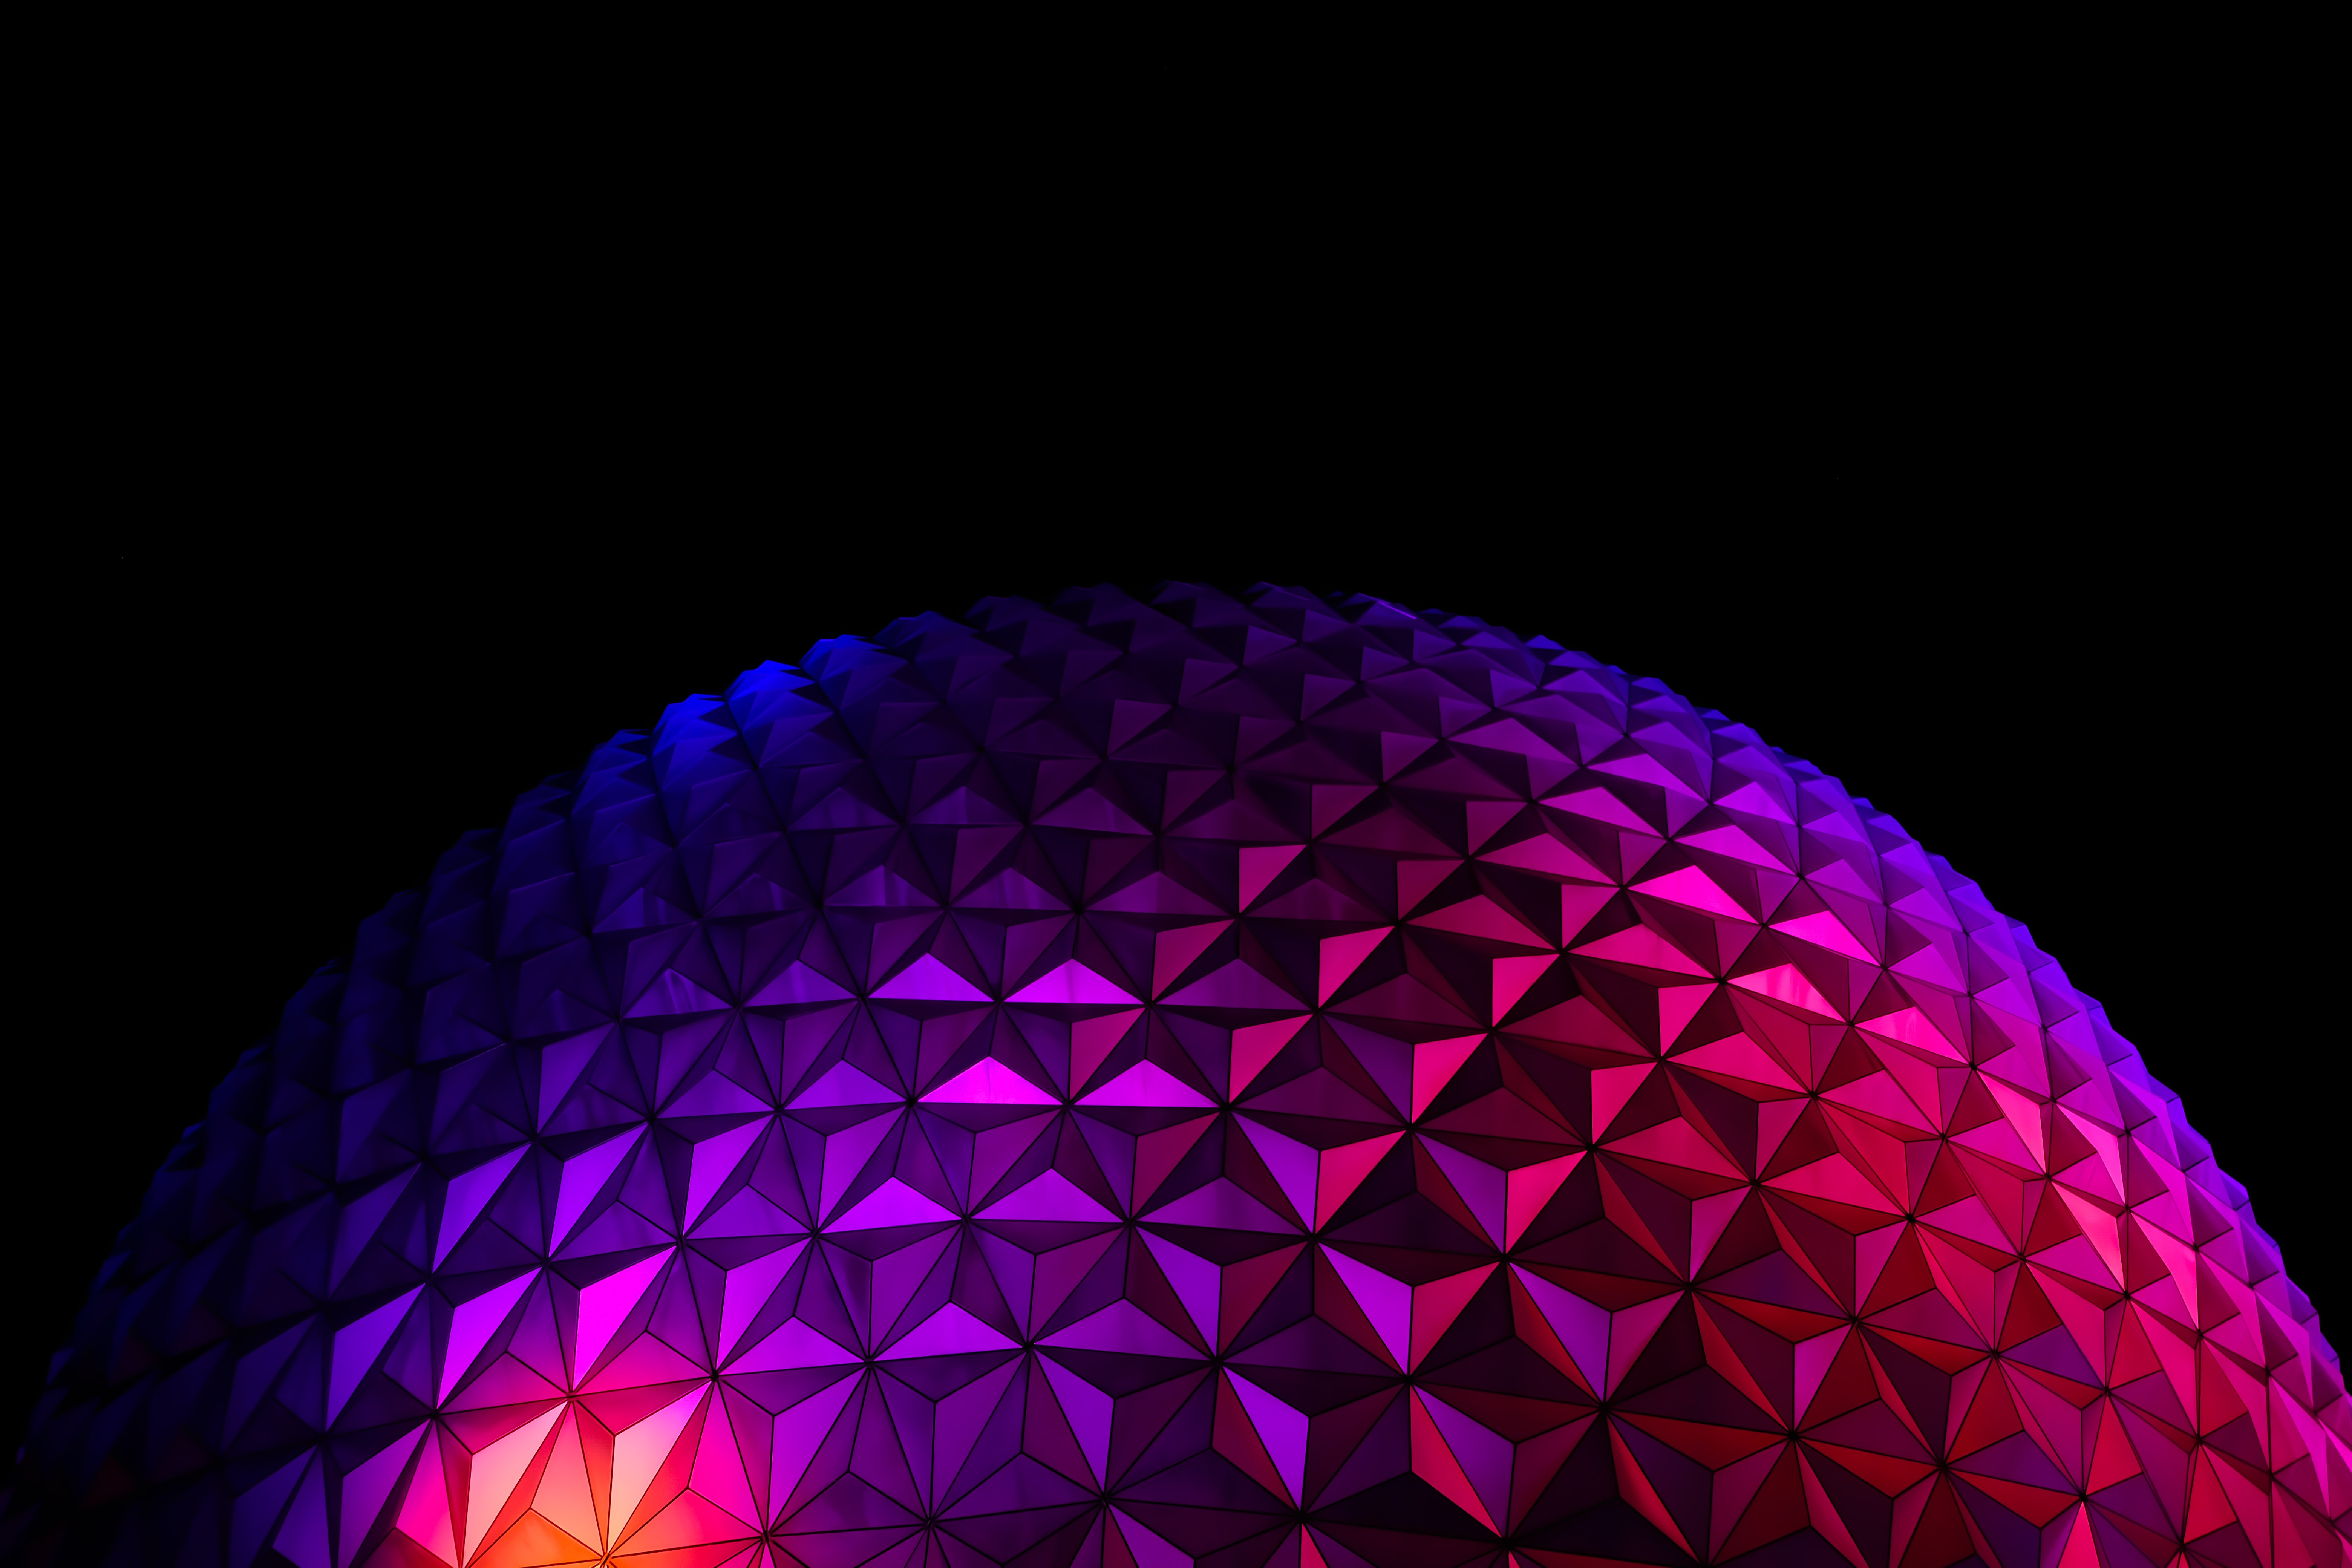 153509 download wallpaper Miscellanea, Violet, Miscellaneous, Surface, Relief, Ball, Purple, Gradient screensavers and pictures for free